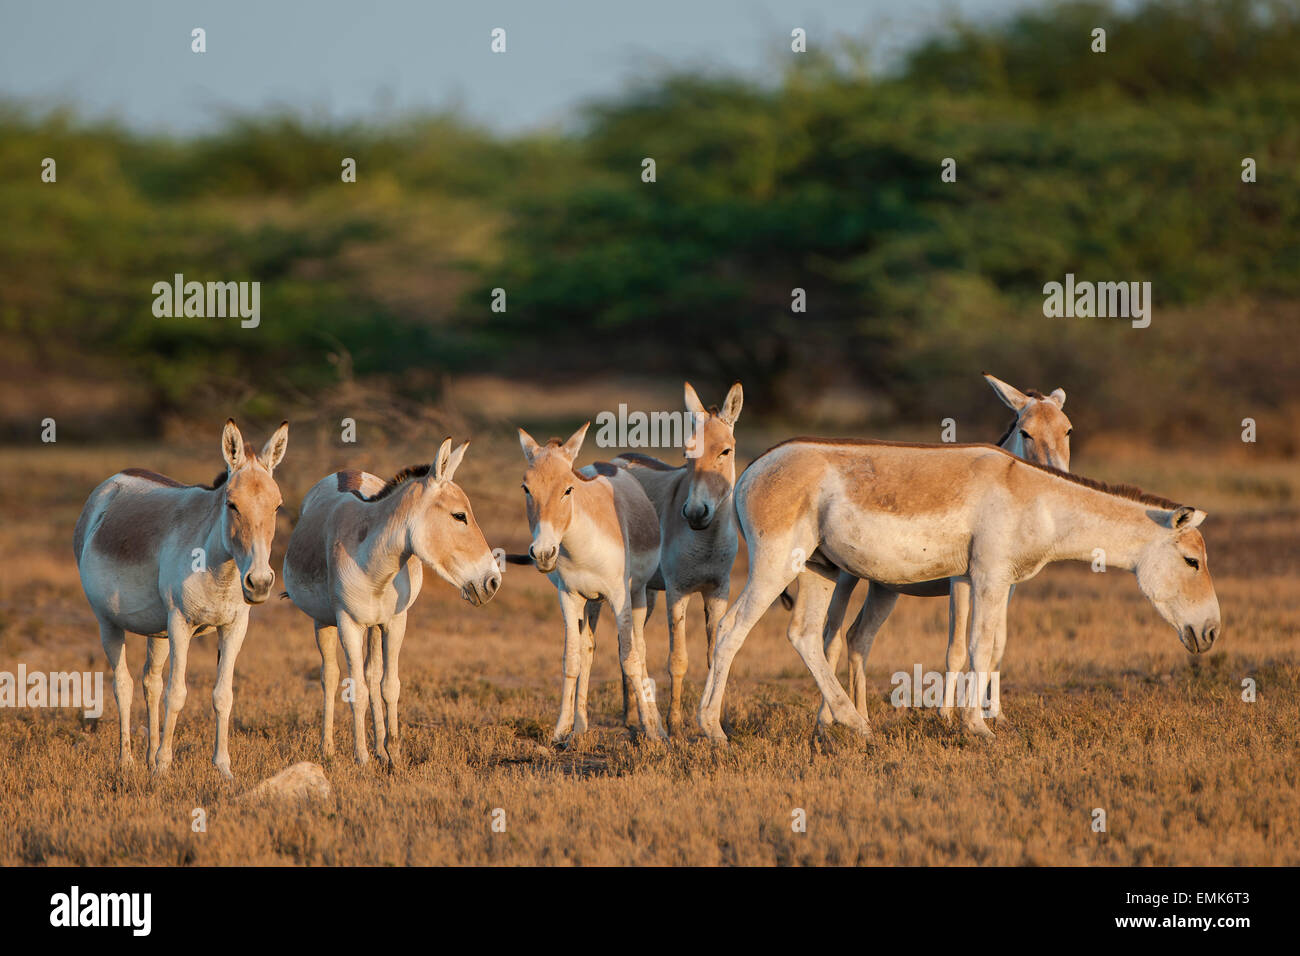 Onagers or Asiatic wild asses (Equus hemionus), endangered species, Little Rann of Kutch, Gujarat, India - Stock Image